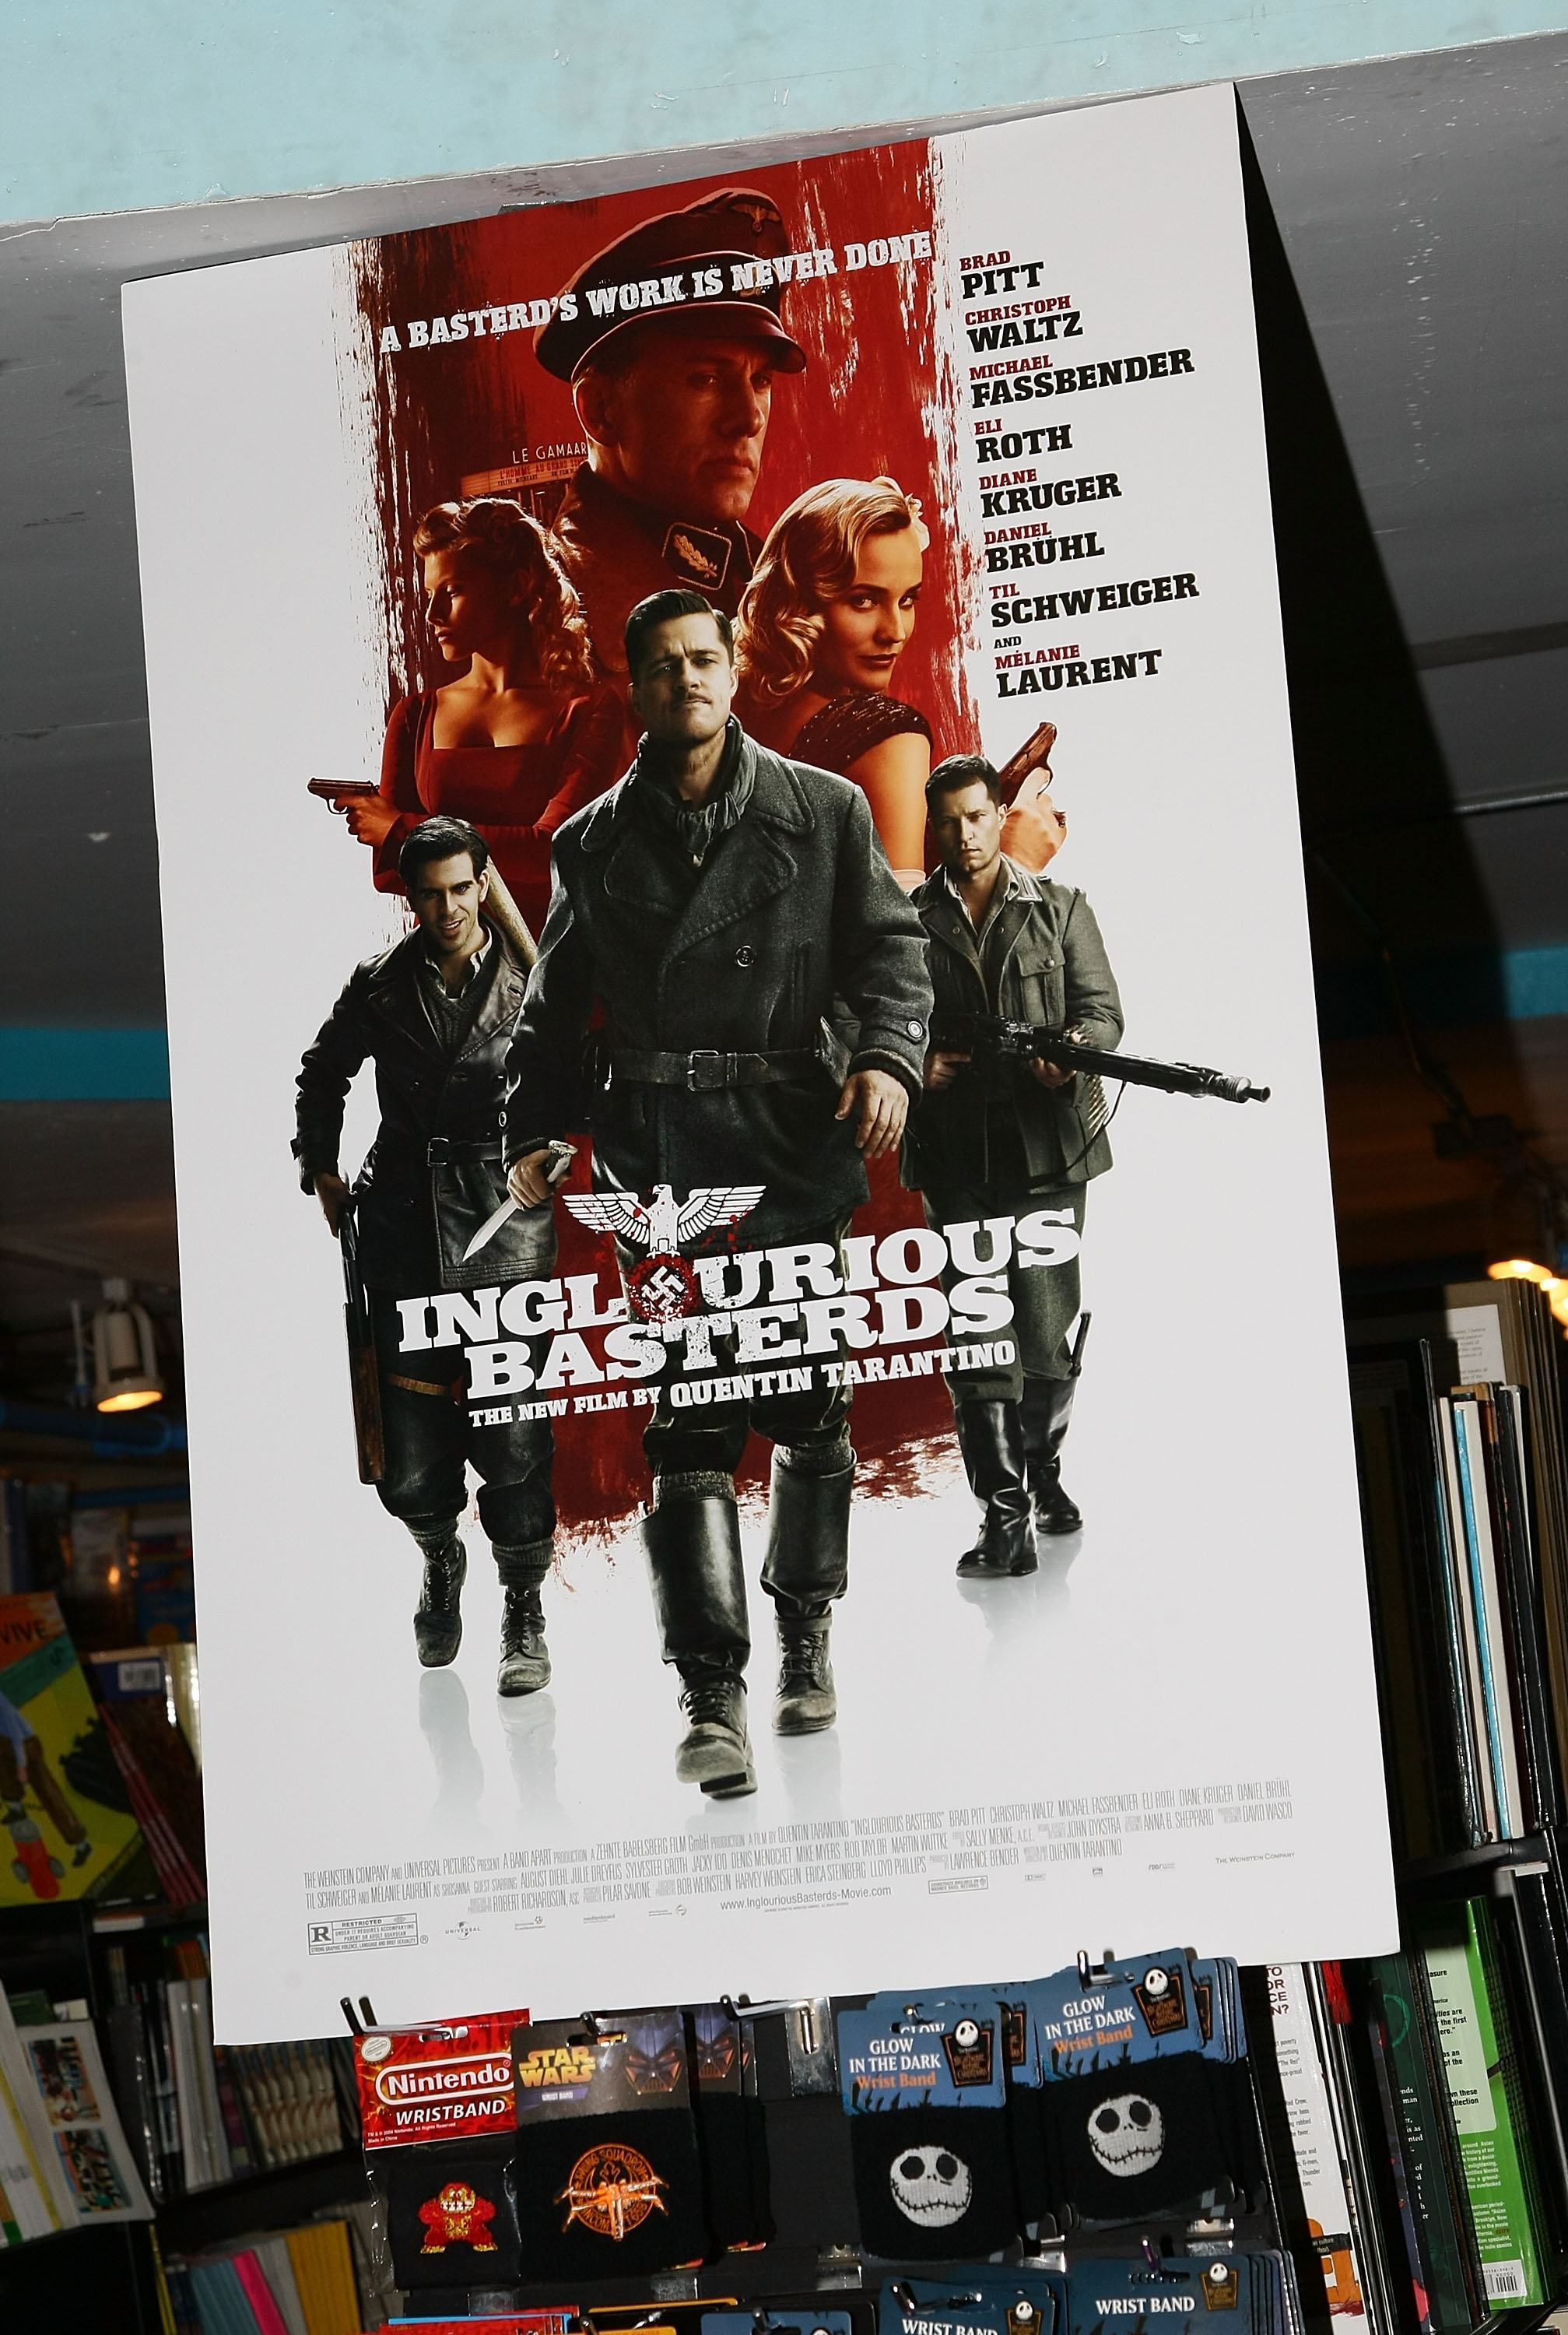 Eli Roth Poster Signing for Inglourious Basterds